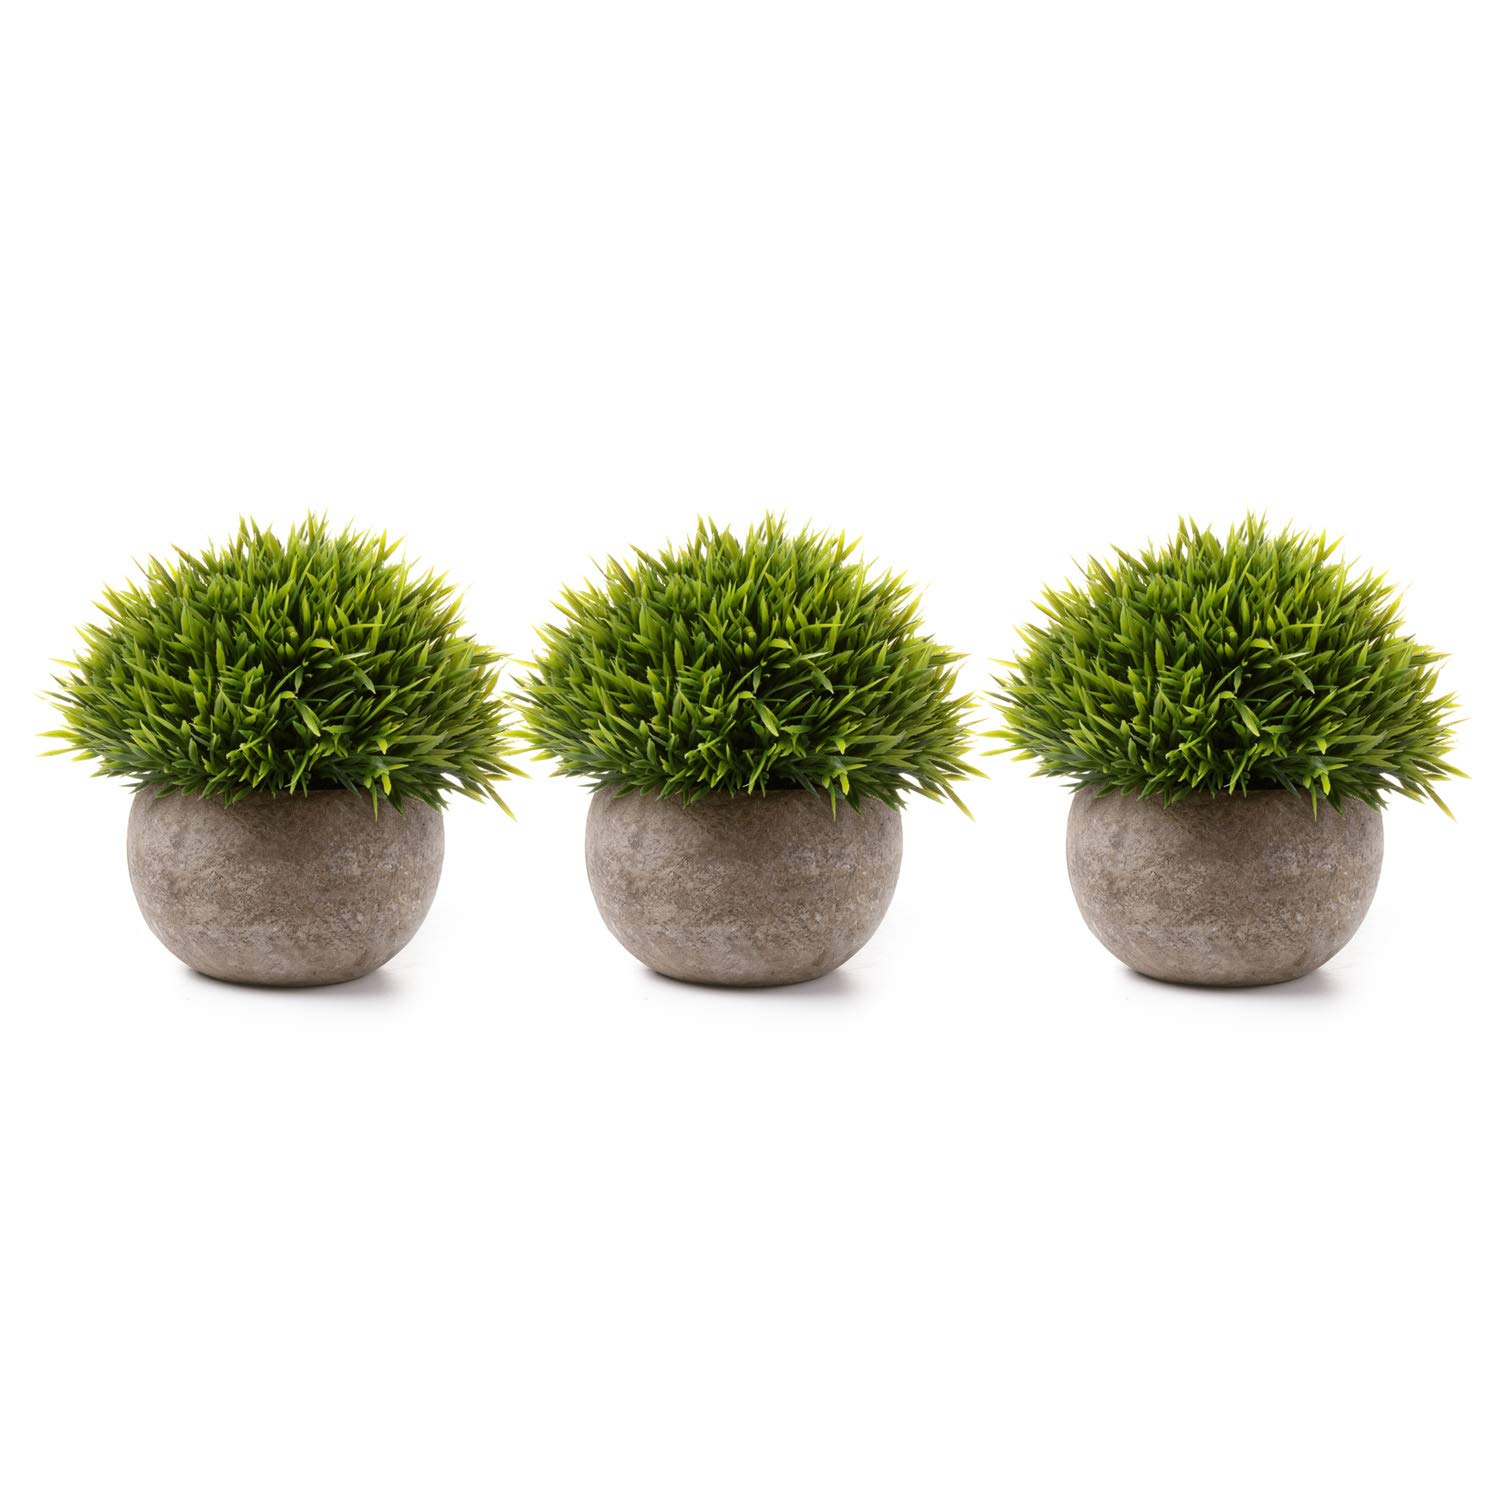 T4U 3PCS Artificial Plastic Potted Plant Fake Green Grass Faux Plant with Pot for Home Office Indoor Décor by T4U